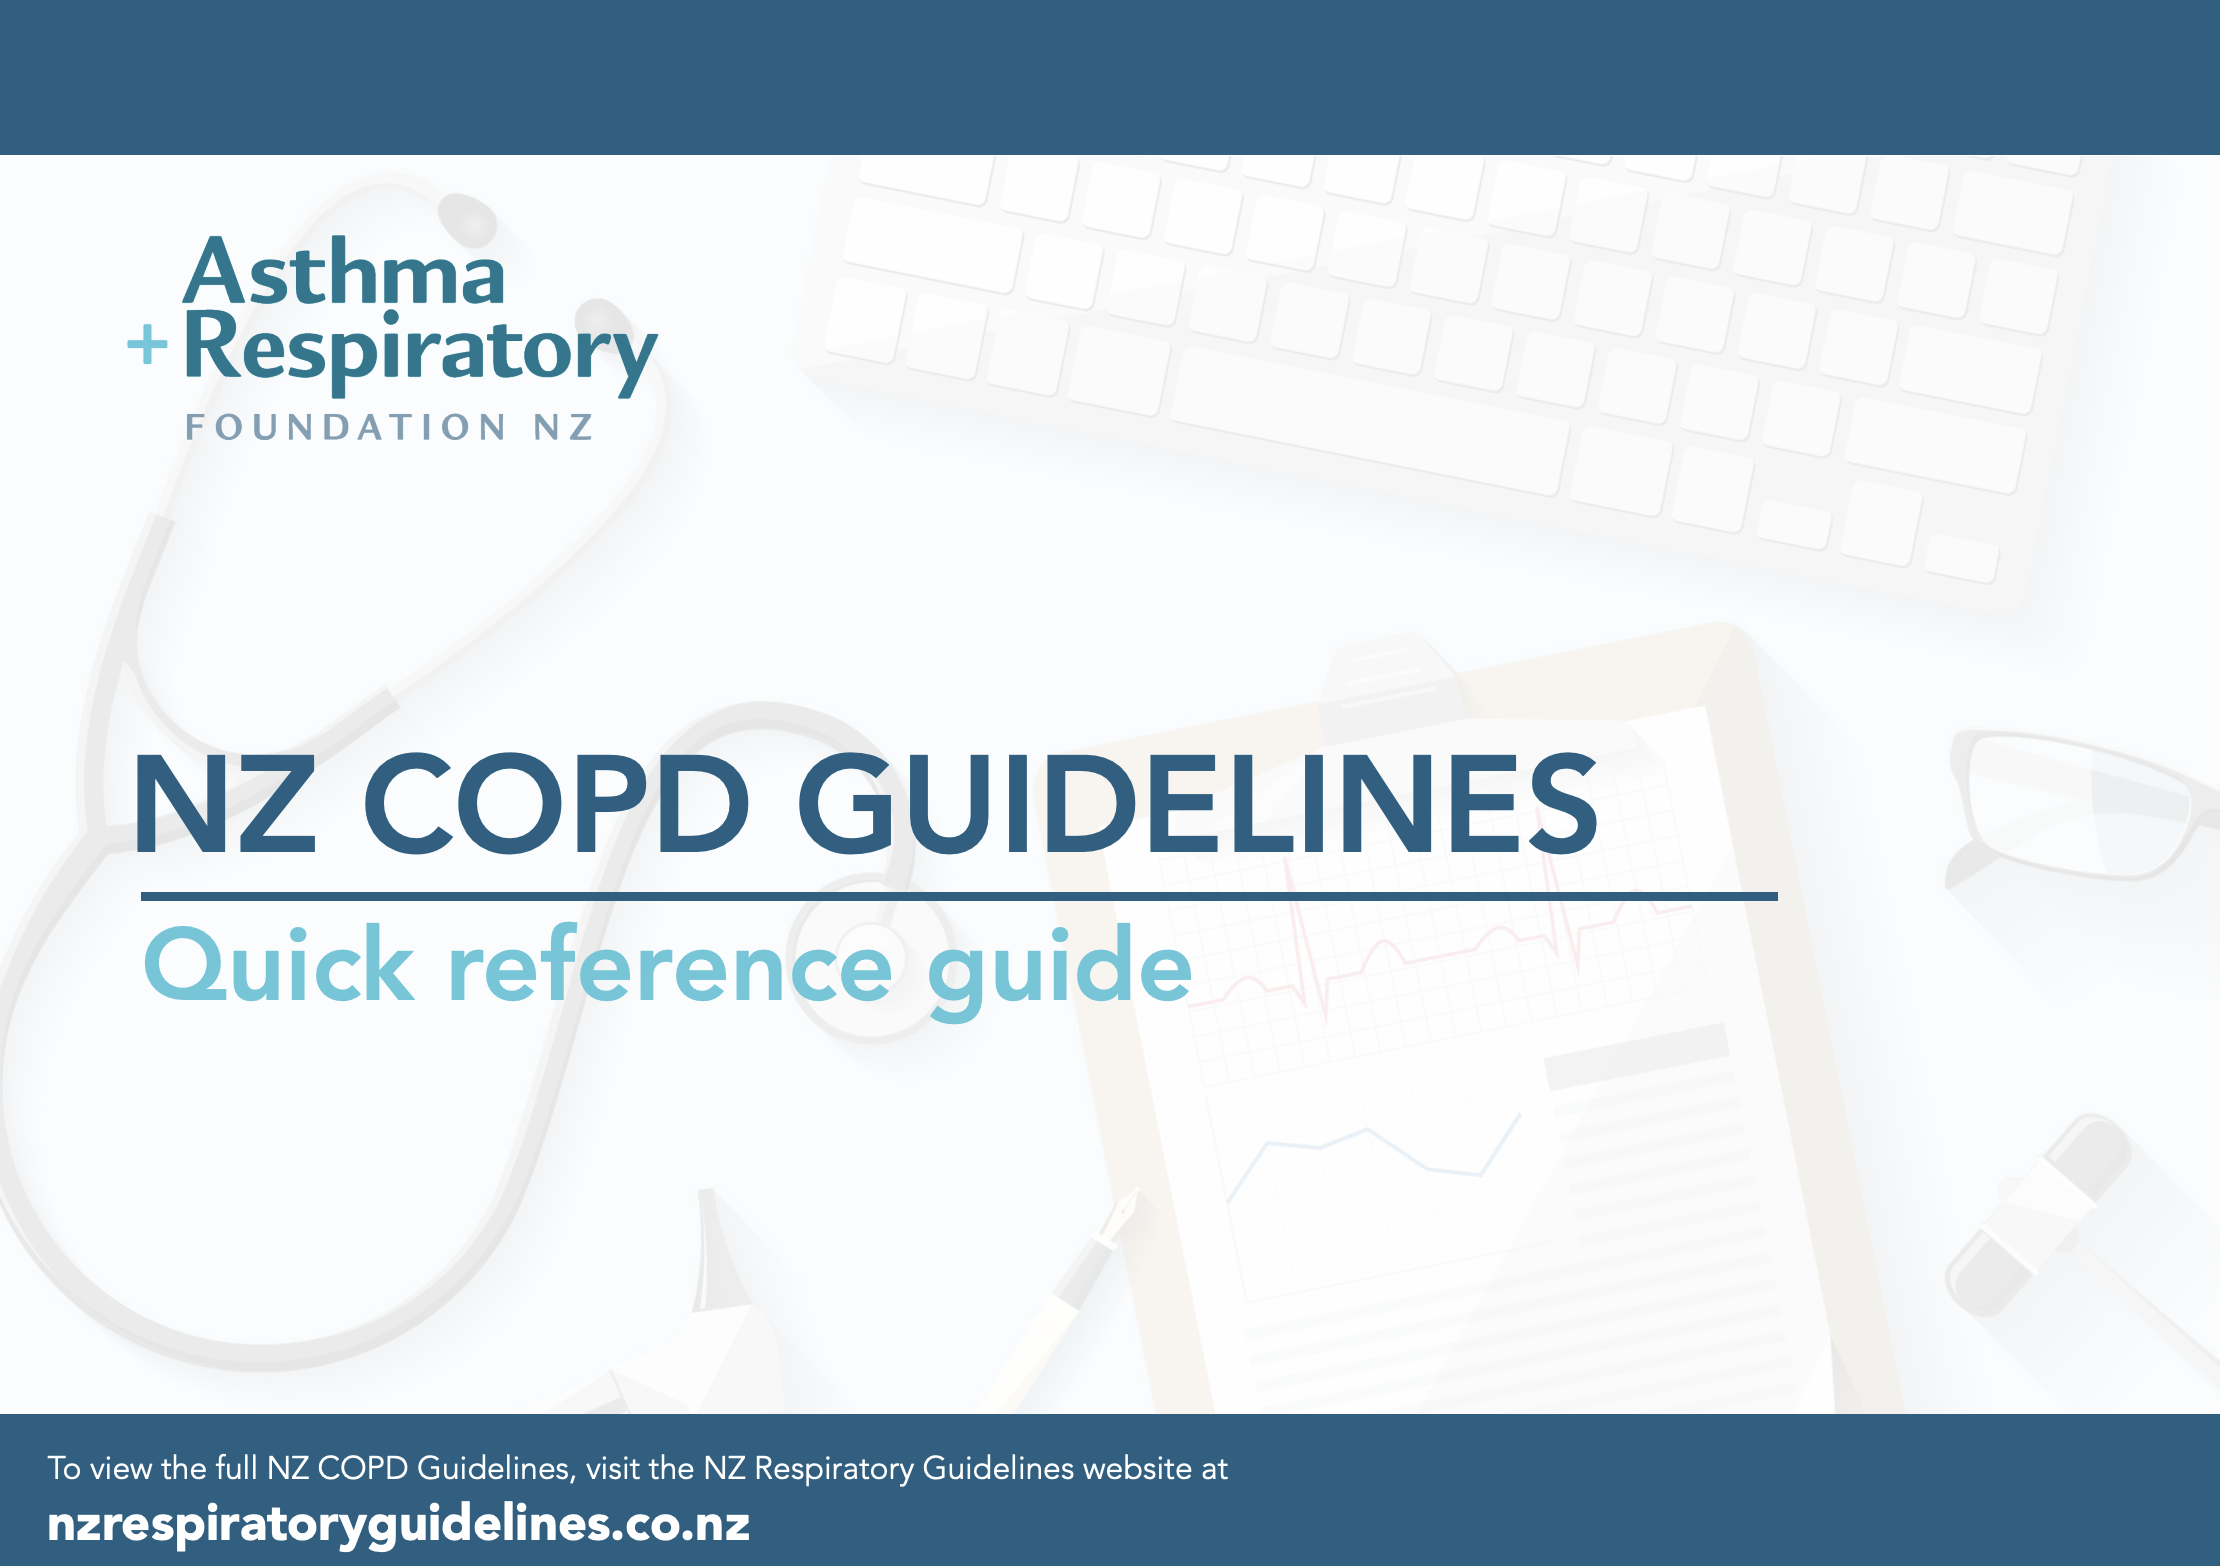 NZ COPD Guidelines - Quick Reference Guide